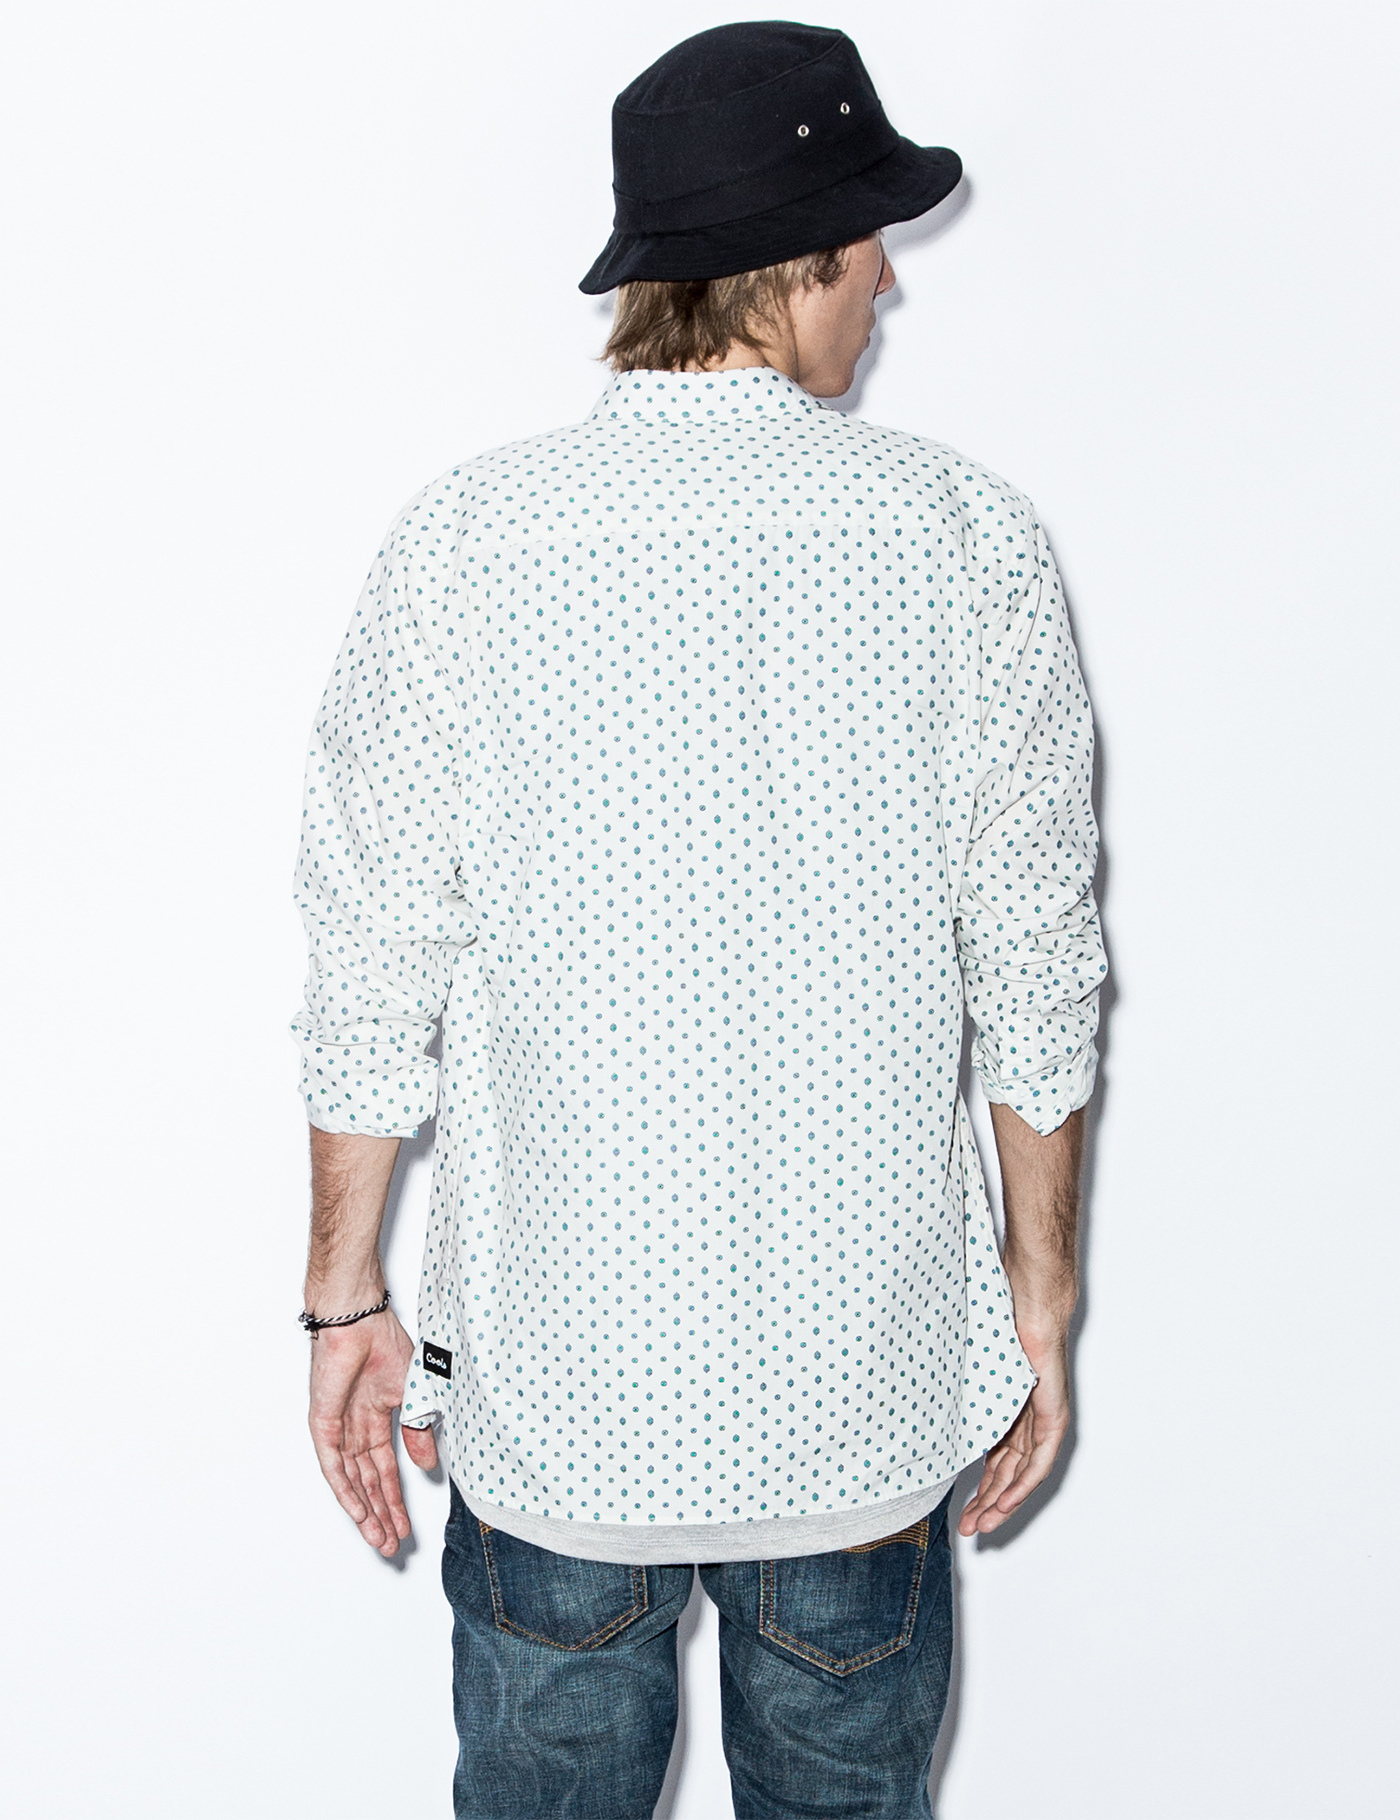 Barney Cools White Boho Ls Shirt In For Men Lyst